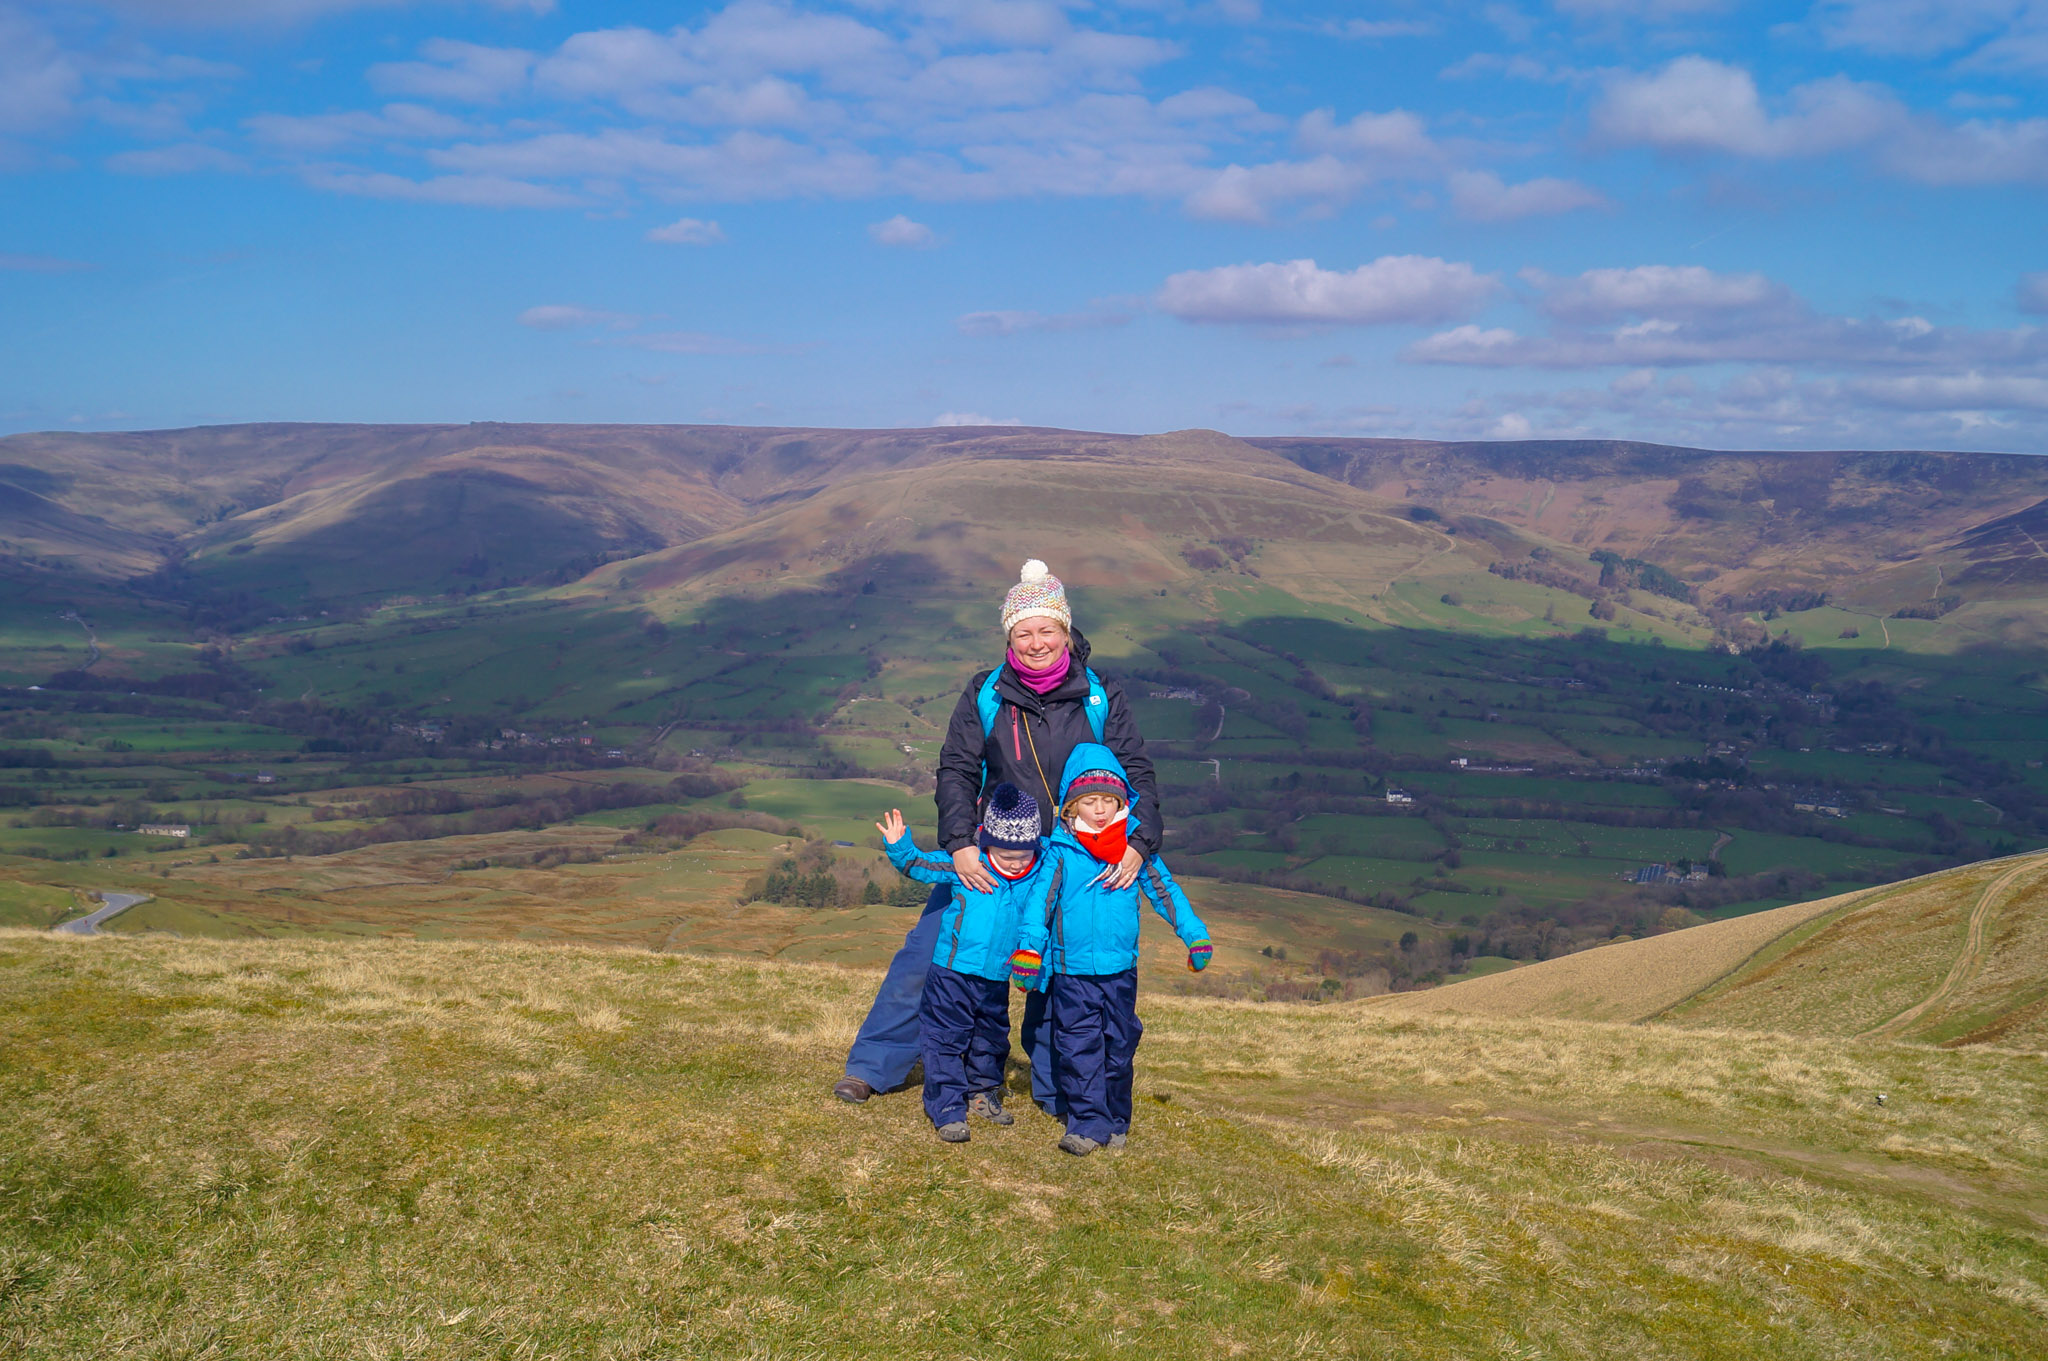 Top 12 tips for hiking with kids under 5 years